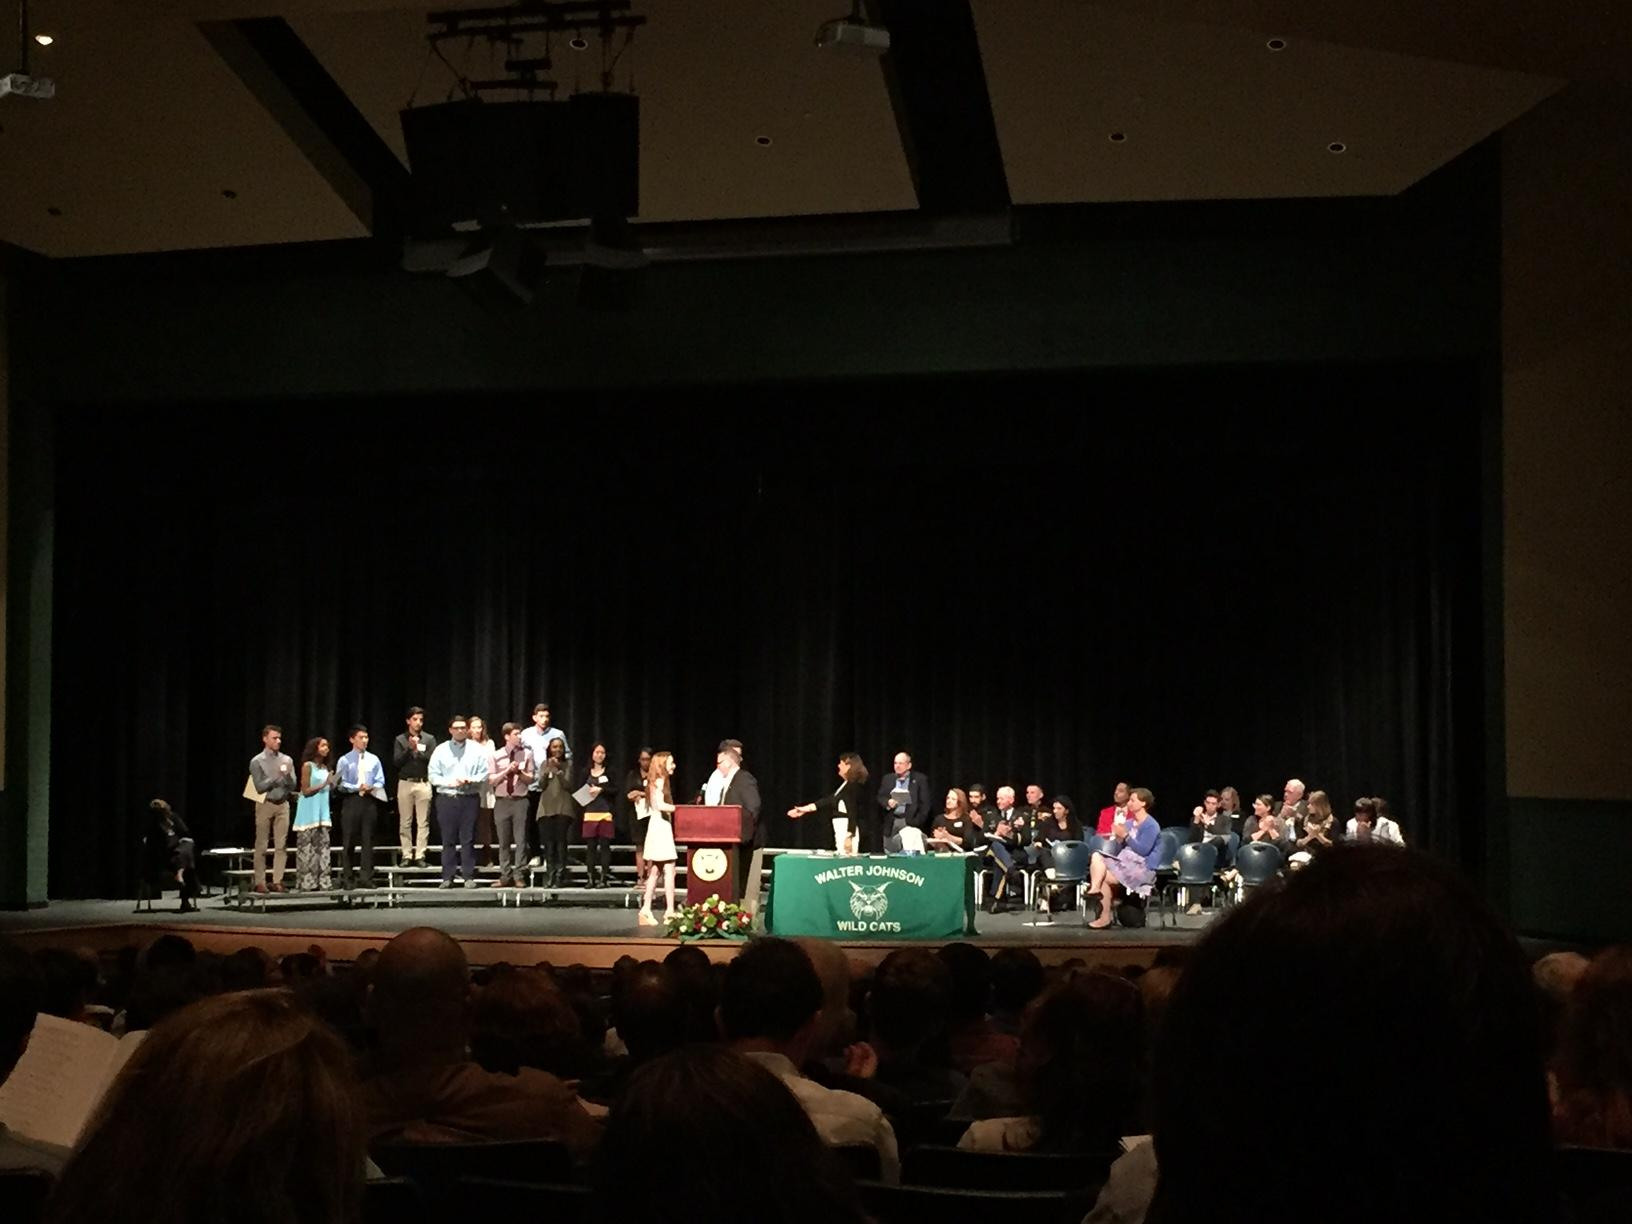 Academics awards celebrate student accomplishments